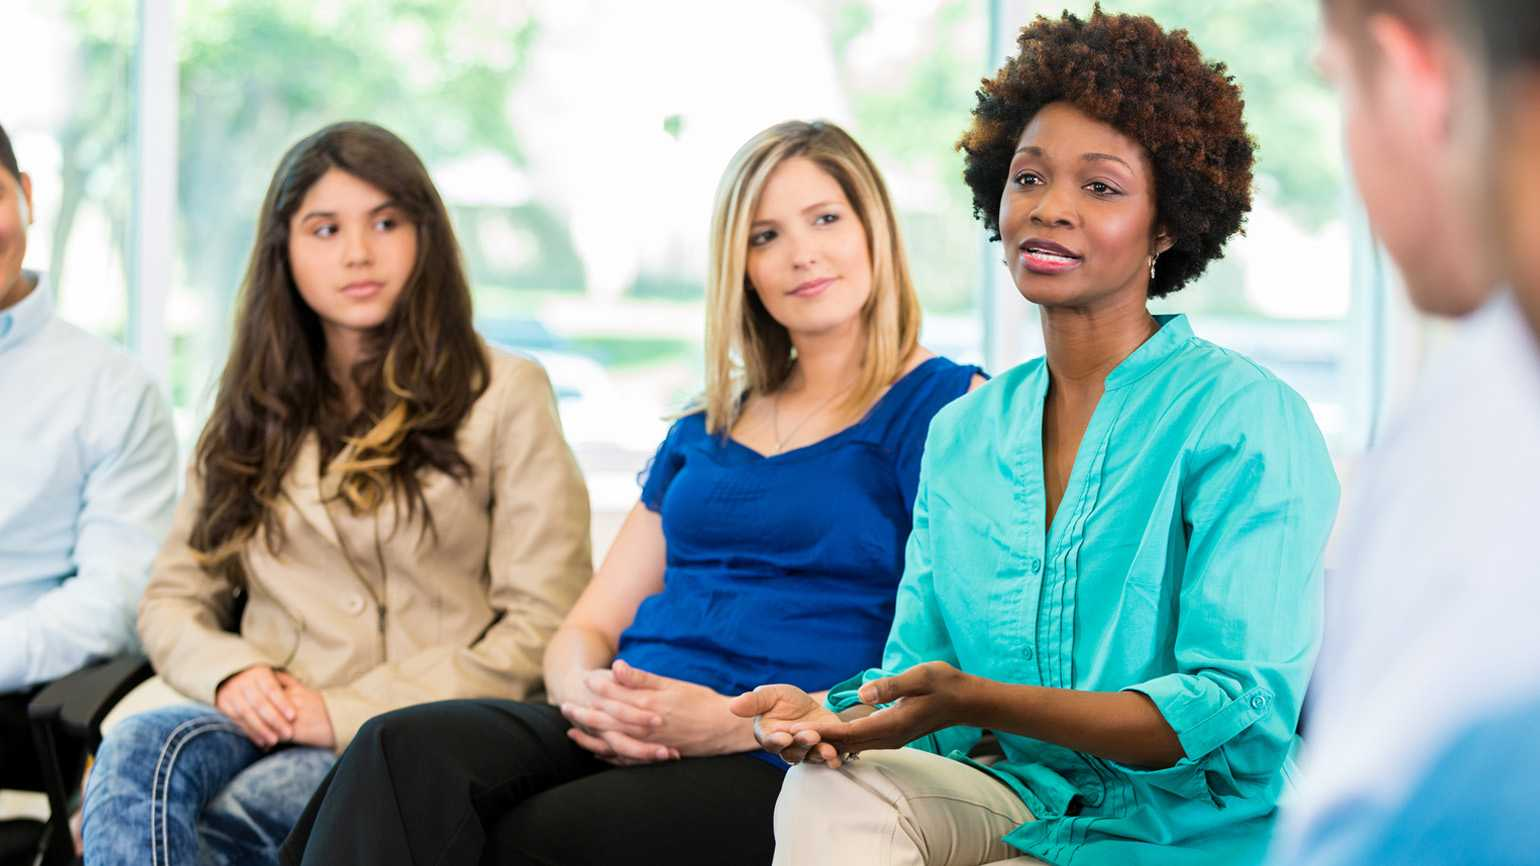 A woman speaking out in a support group.